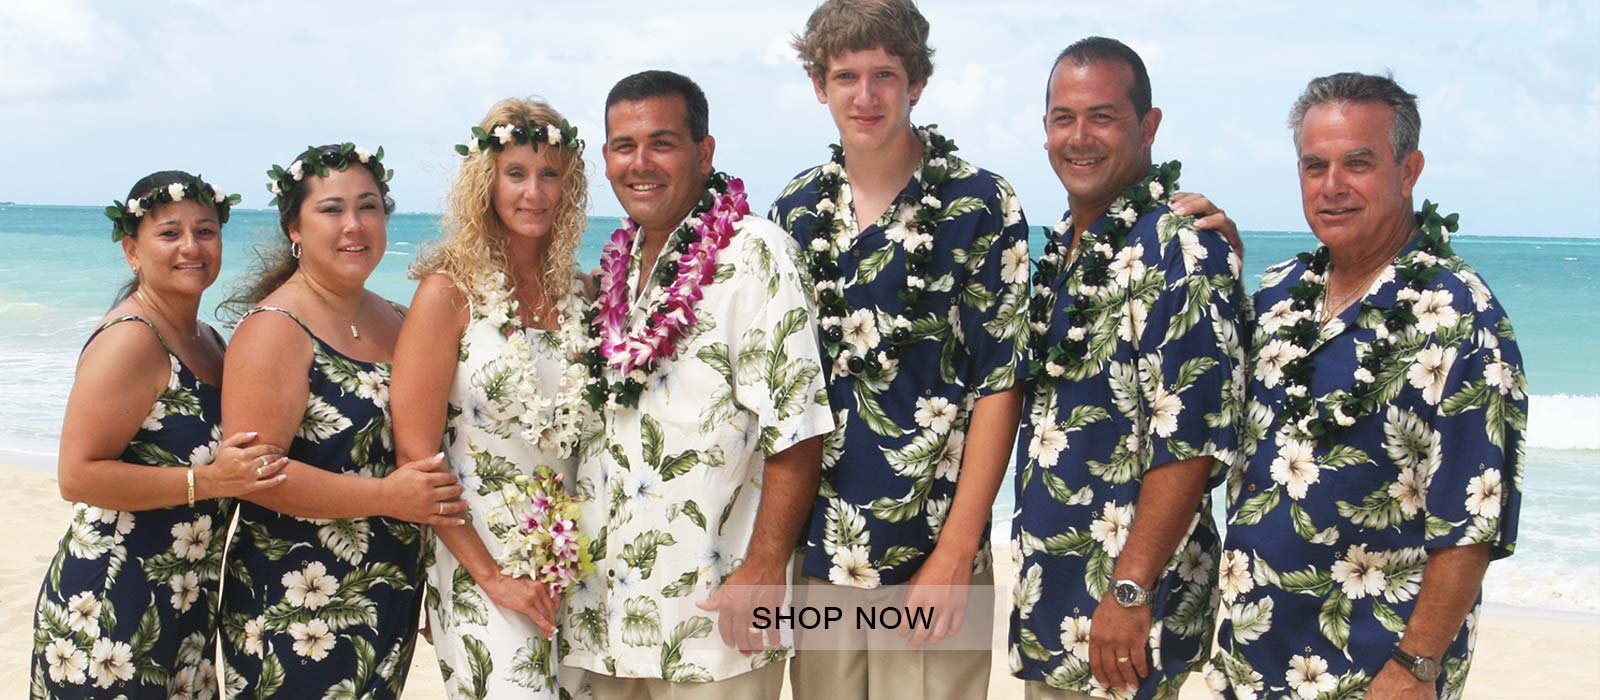 How To Uniquely Wear Hawaiian Clothing On Your Vacation Careyfashion